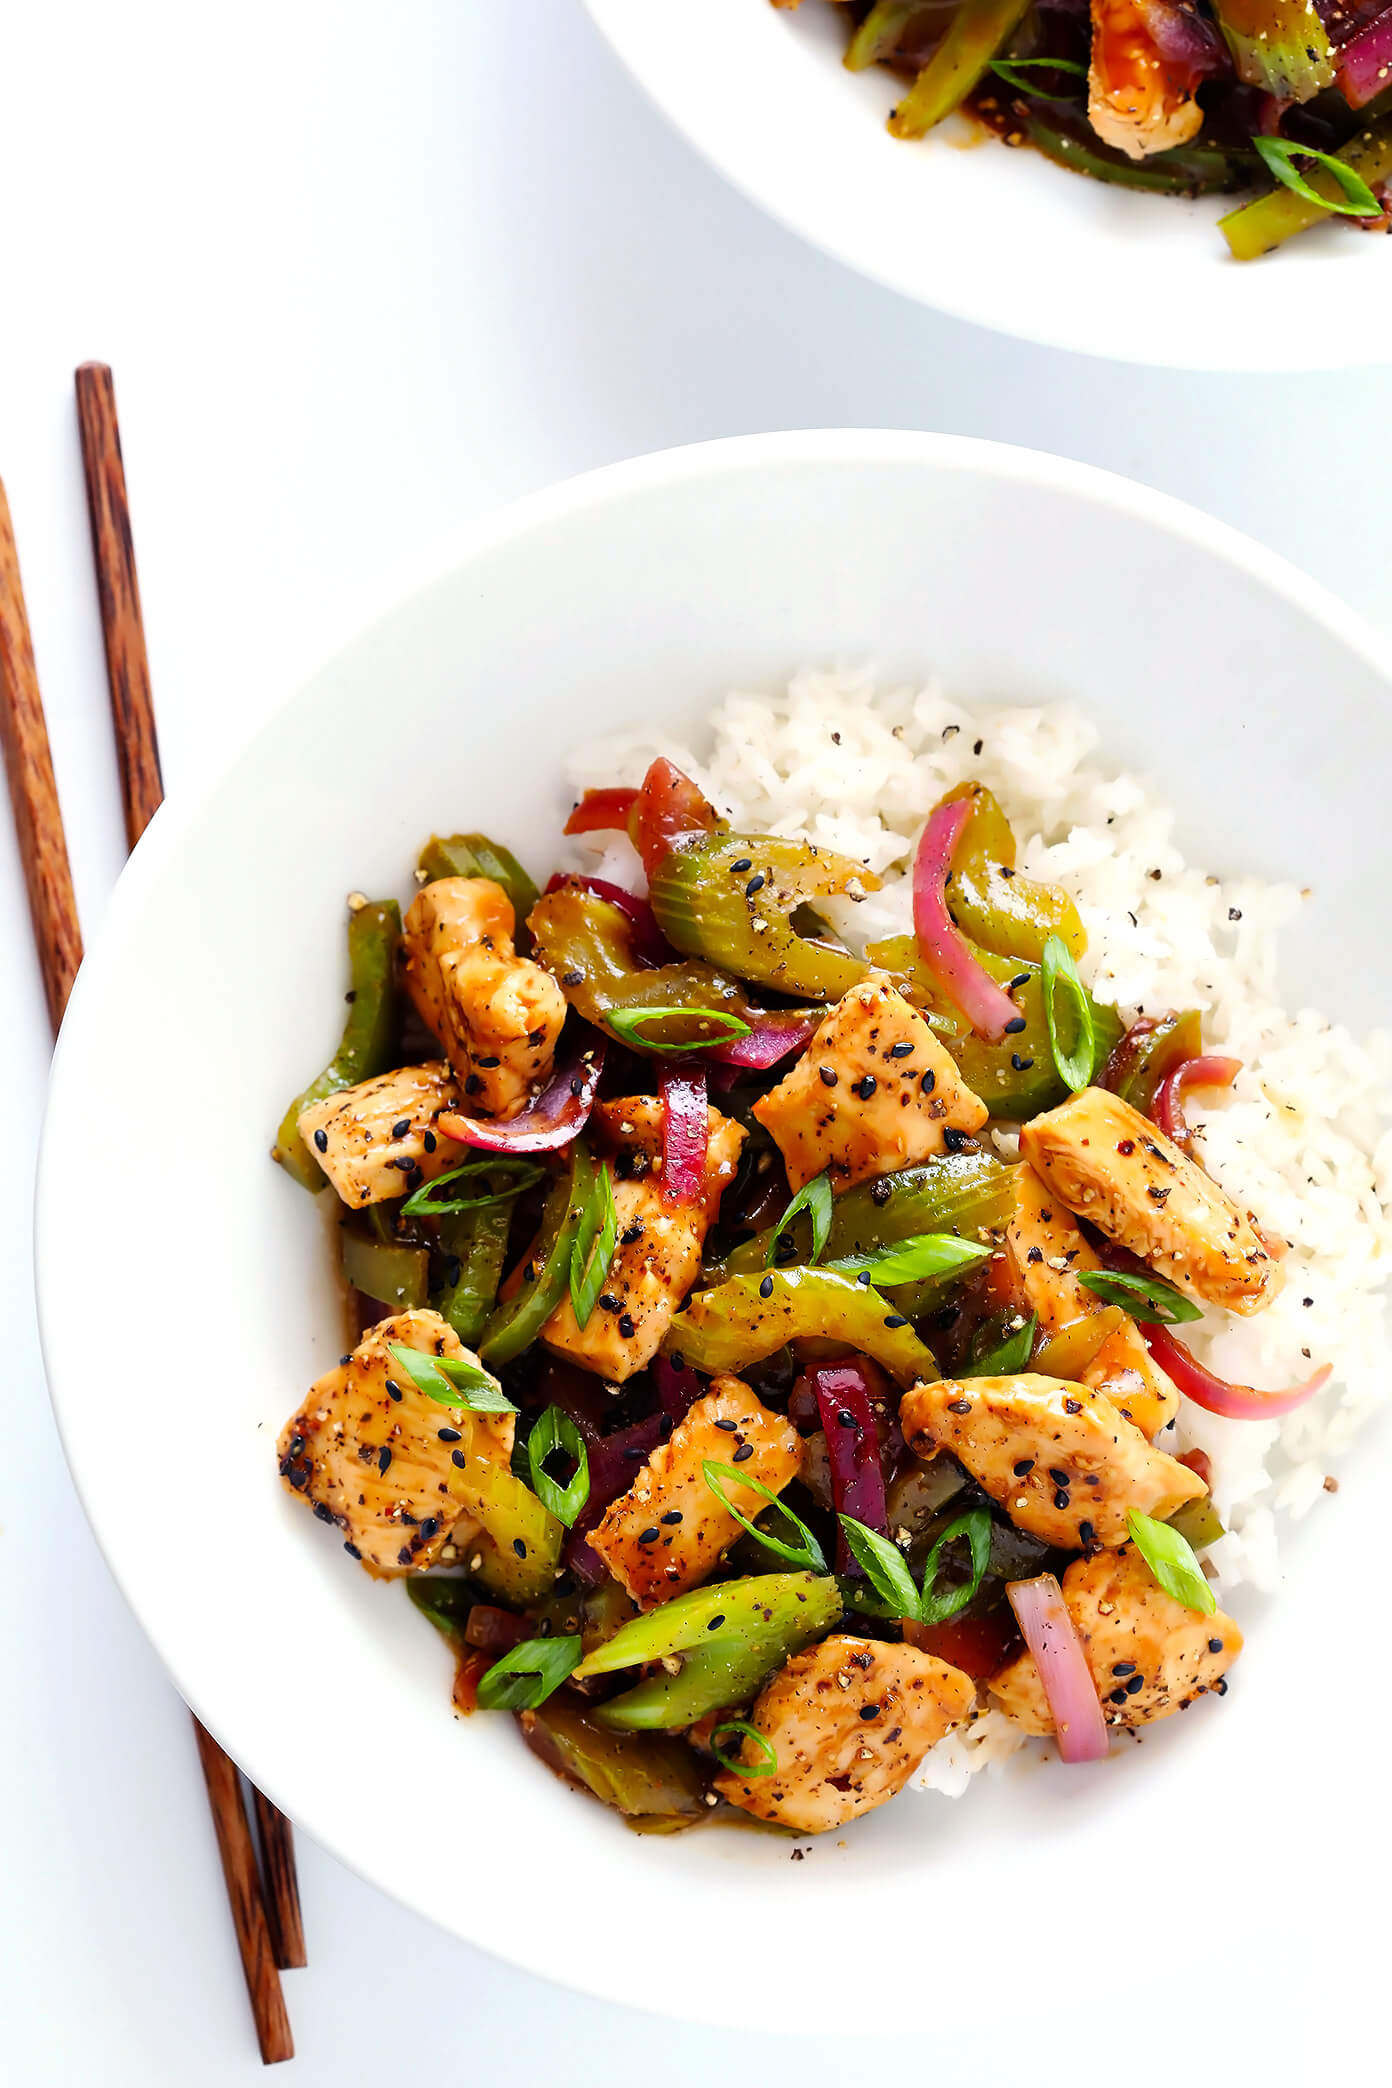 This 20-Minute Black Pepper Chicken recipe is quick and easy to make, and tastes even more delicious than the restaurant version! Feel free to sub in shrimp or tofu or beef or pork (in place of chicken), and add any of your other favorite veggies to the stir-fry. One of my favorite Chinese take-out recipes...made at home!   gimmesomeoven.com